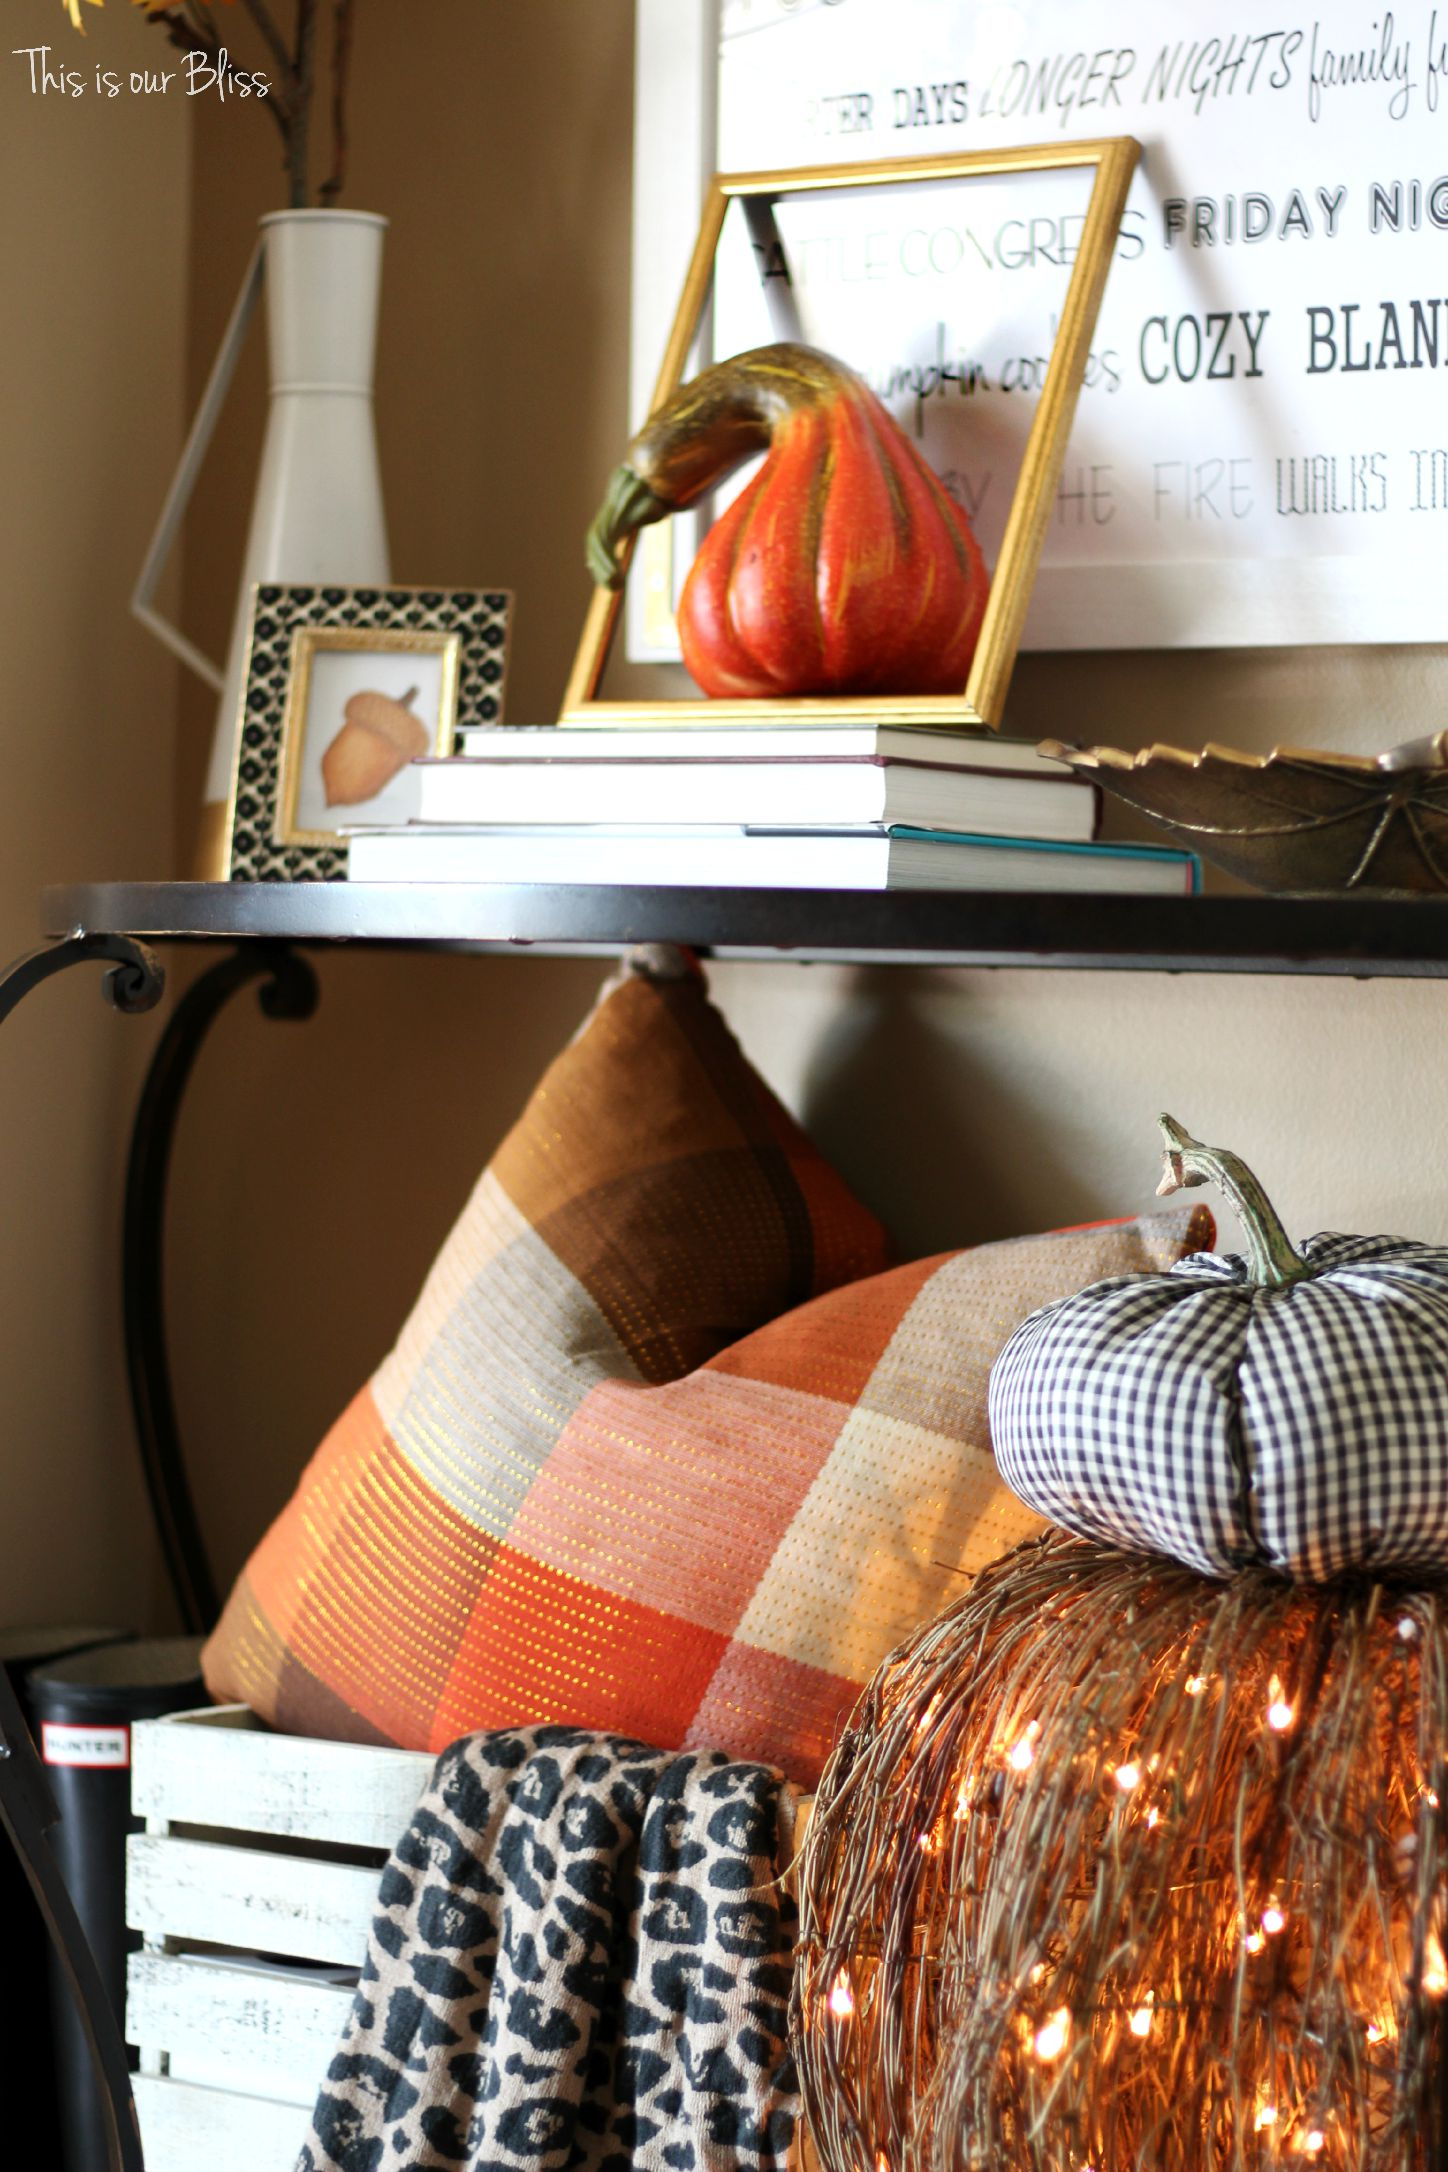 DIY fall throw pillows with cloth napkins Fall entryway fall table linens Fall decorating This is our Bliss